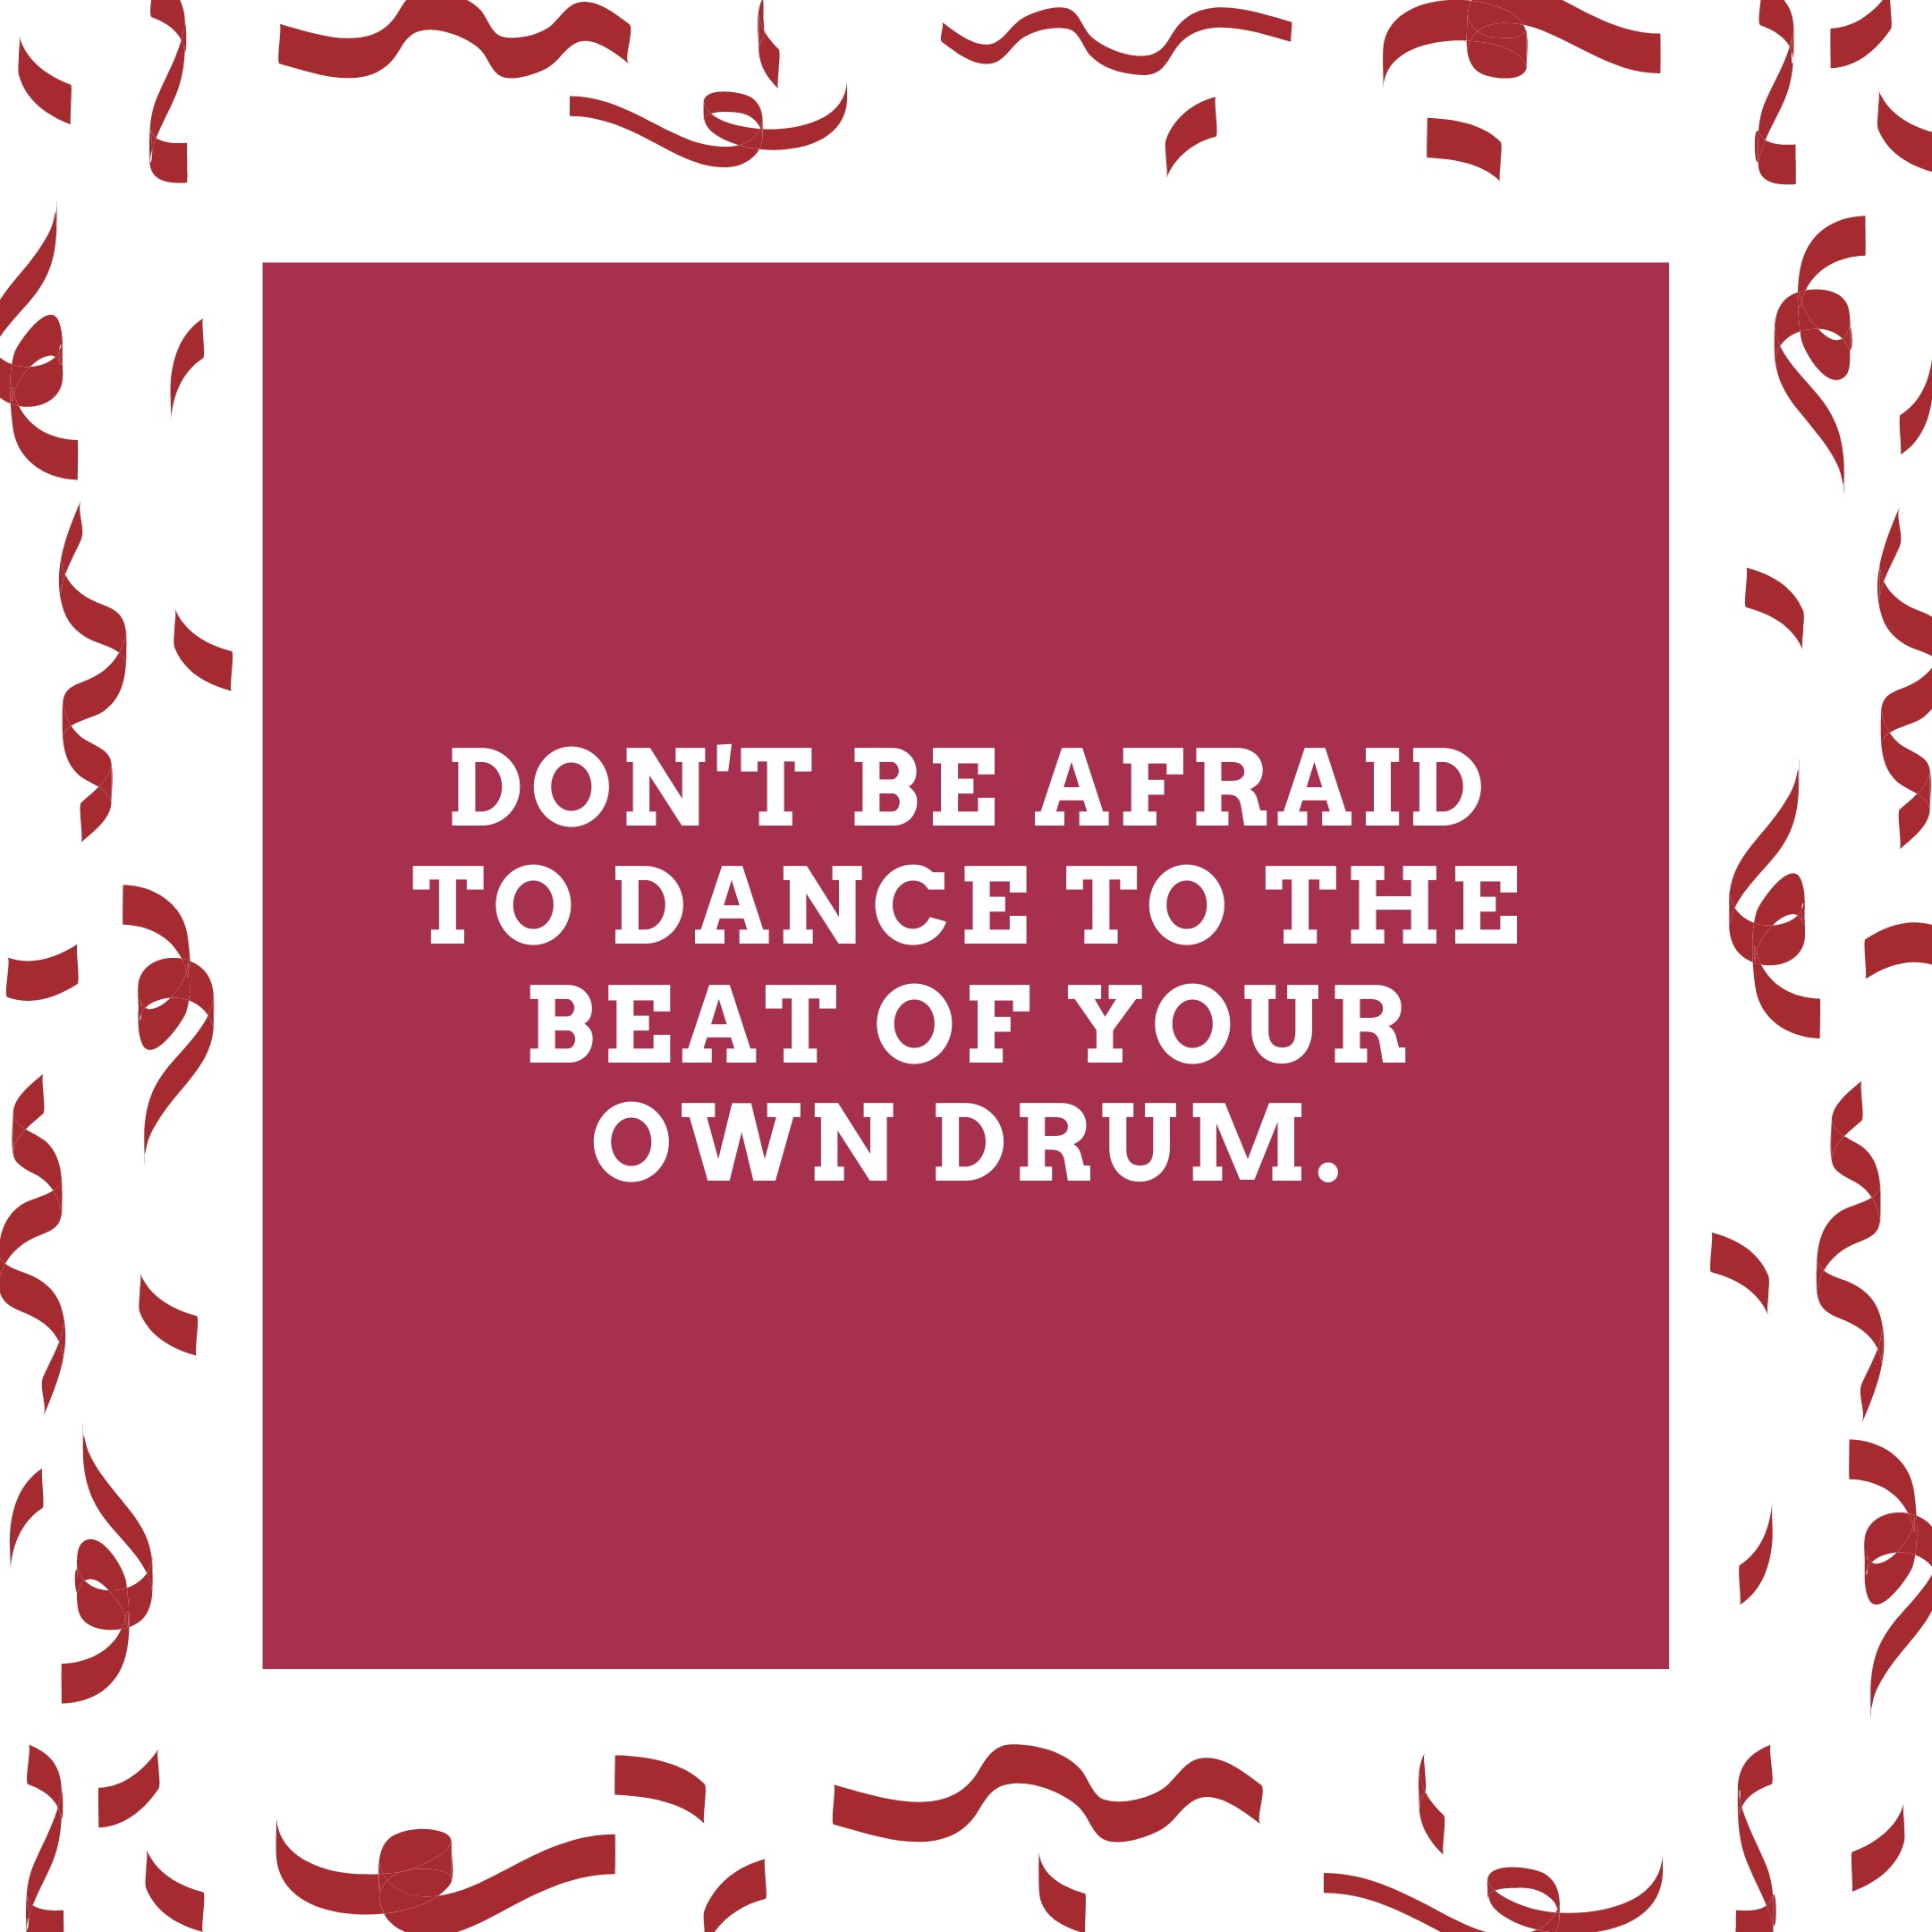 Don't be afraid to dance to the beat of your own drum.